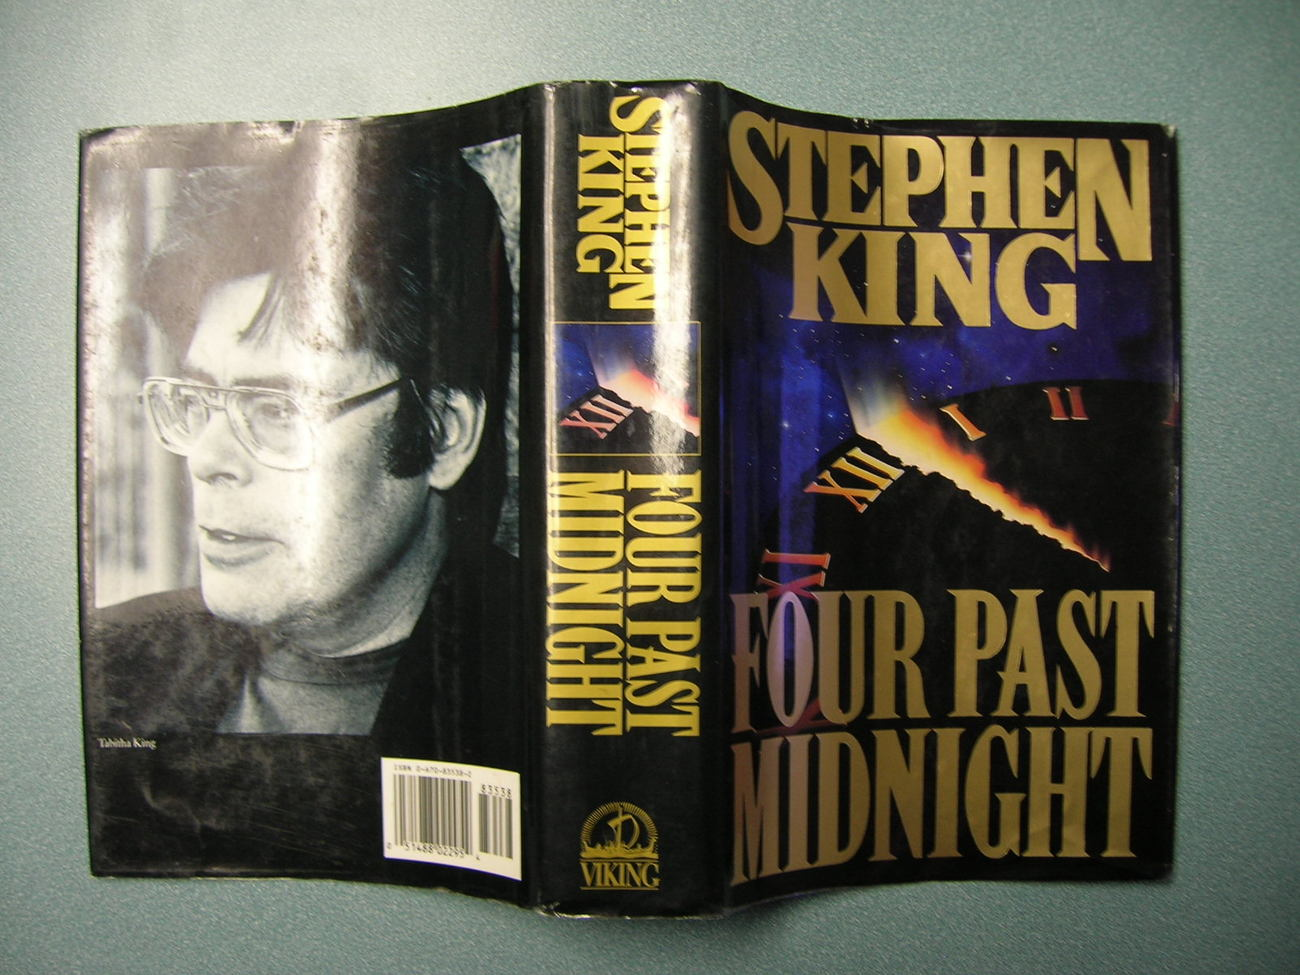 Stephen King - FOUR PAST MIDNIGHT - First Edition